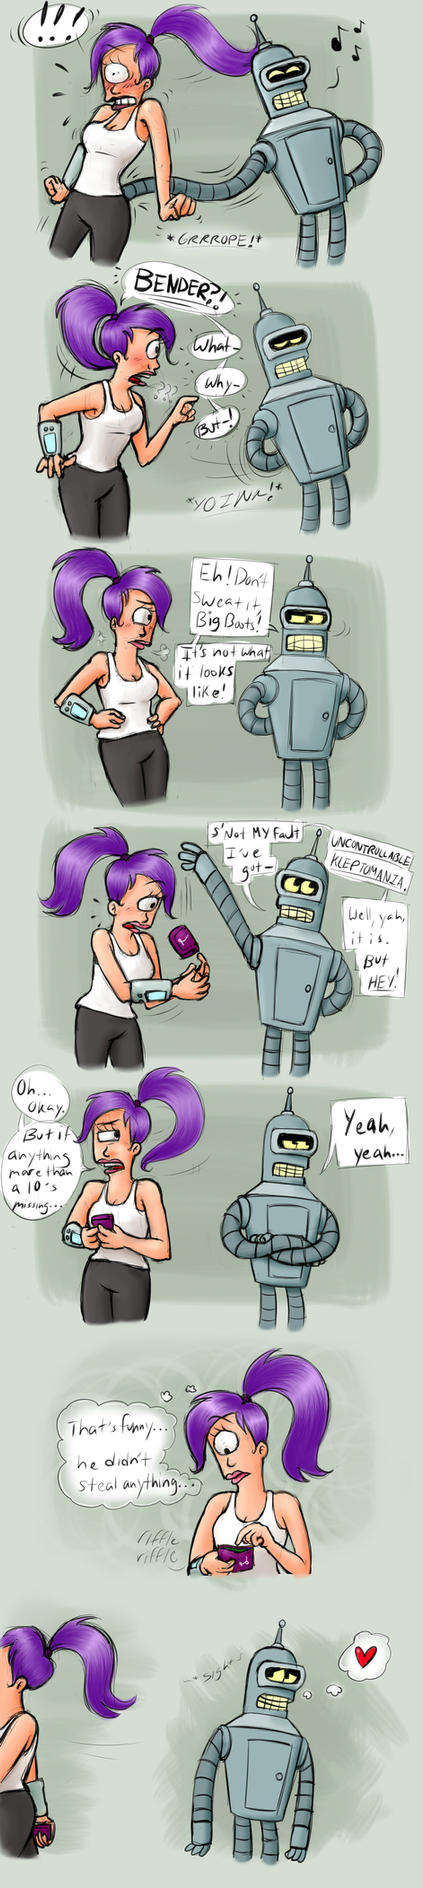 Kleptomania, huh? by MissusPatches